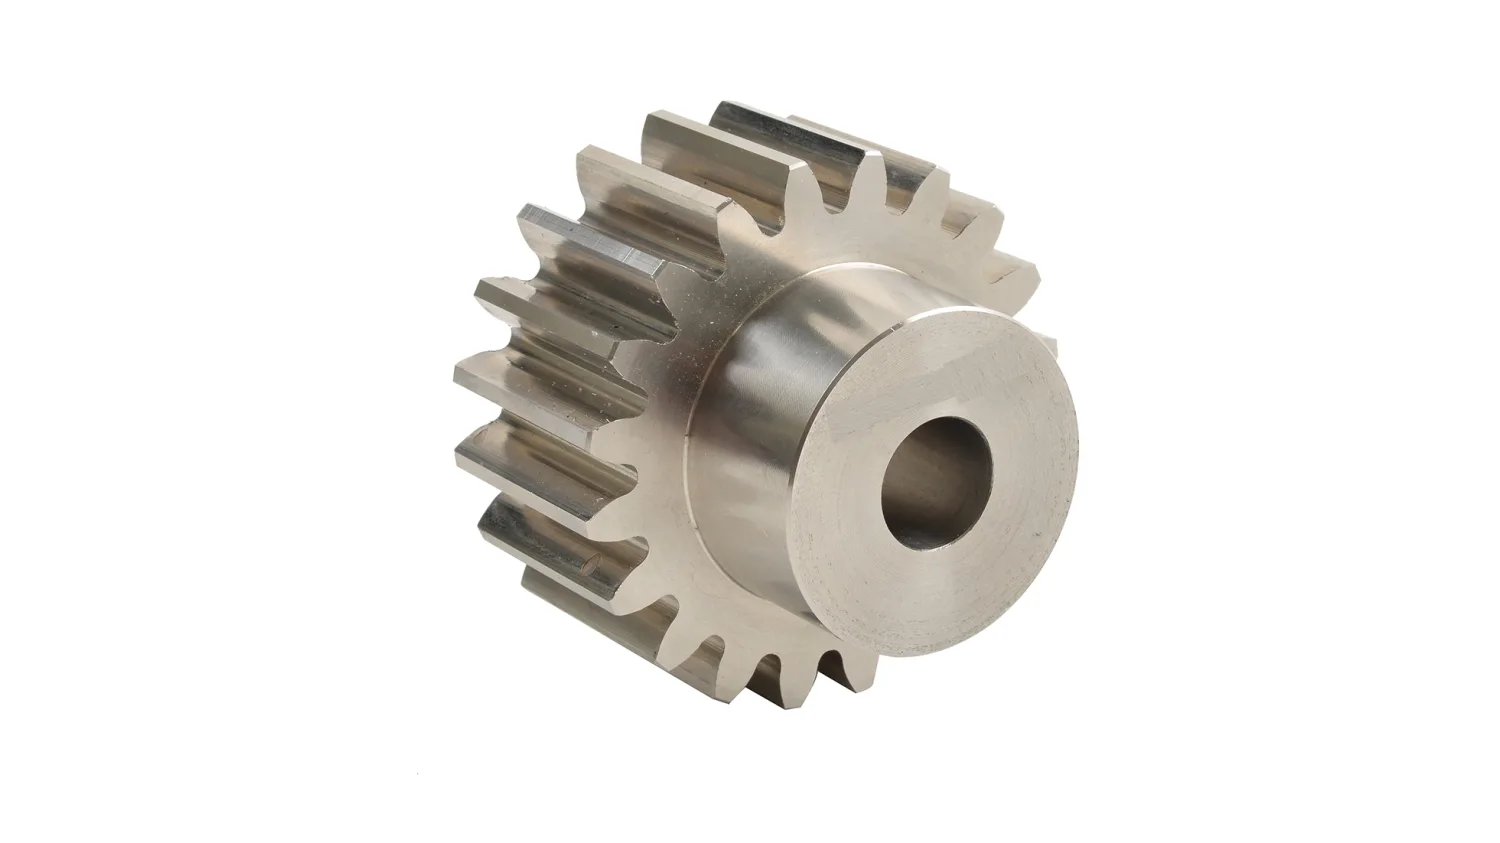 1-25-Mod-x-30-Tooth-Metric-Spur-Gear-in-Steel